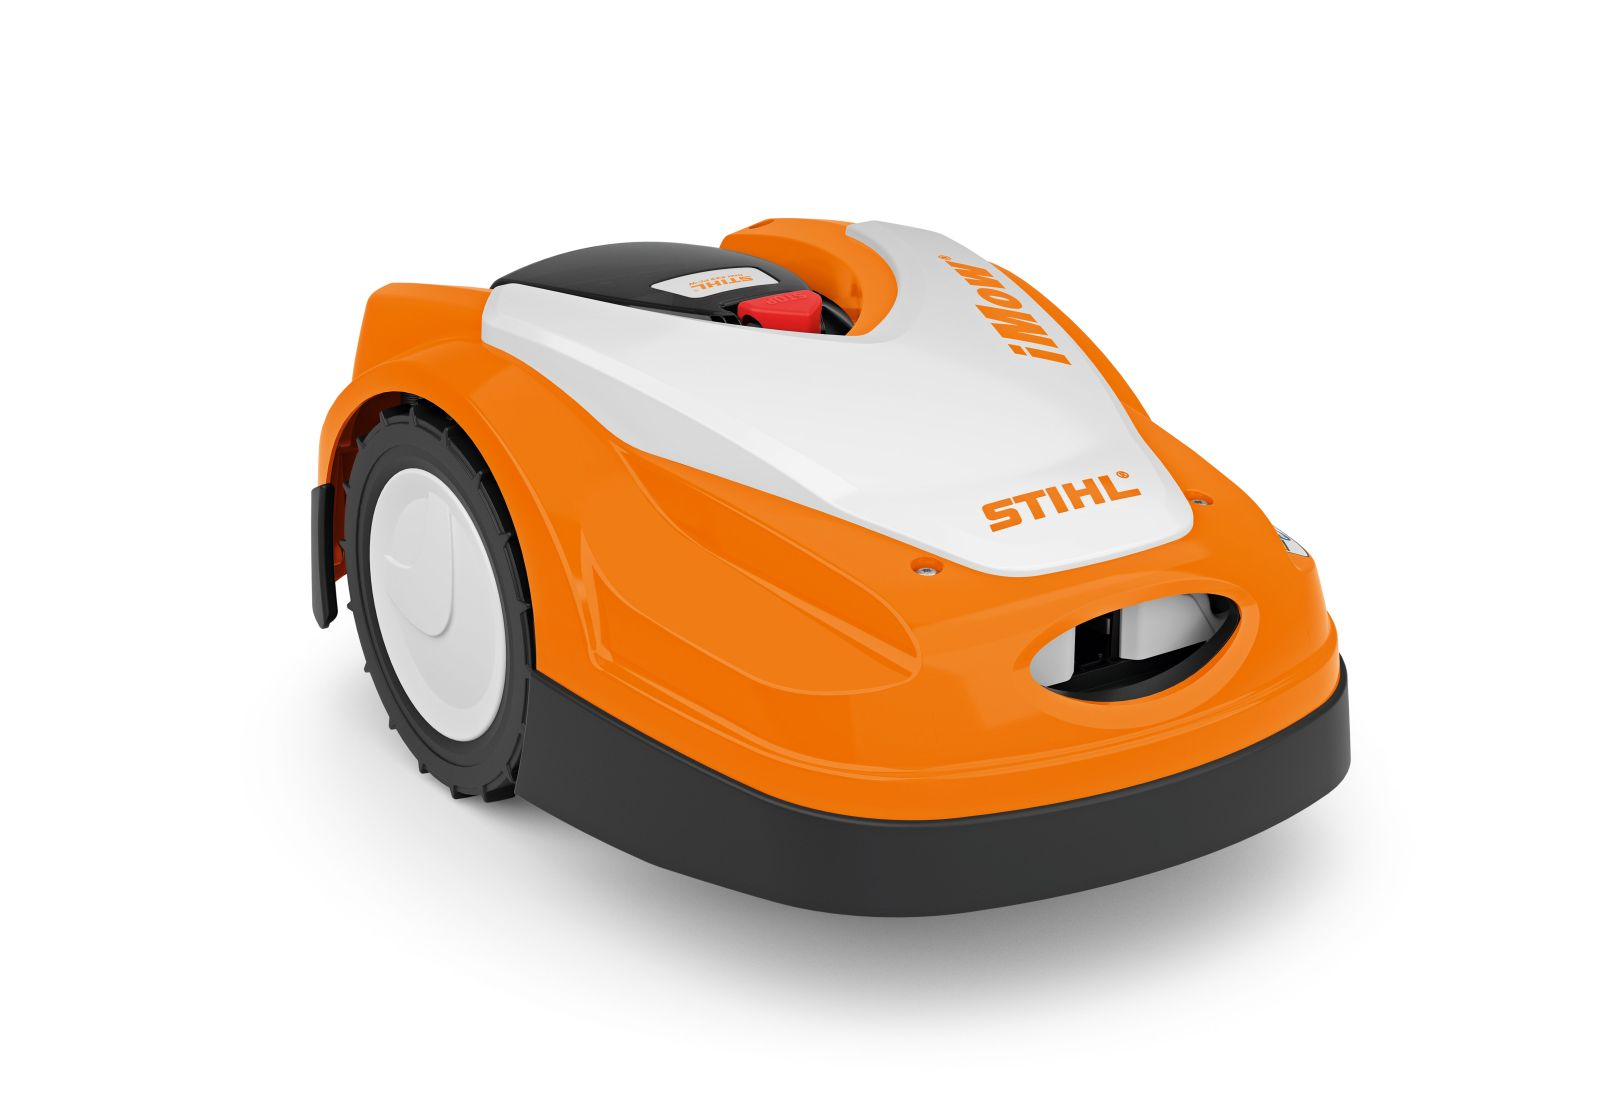 STIHL RMI 422 Electric Robot Mower